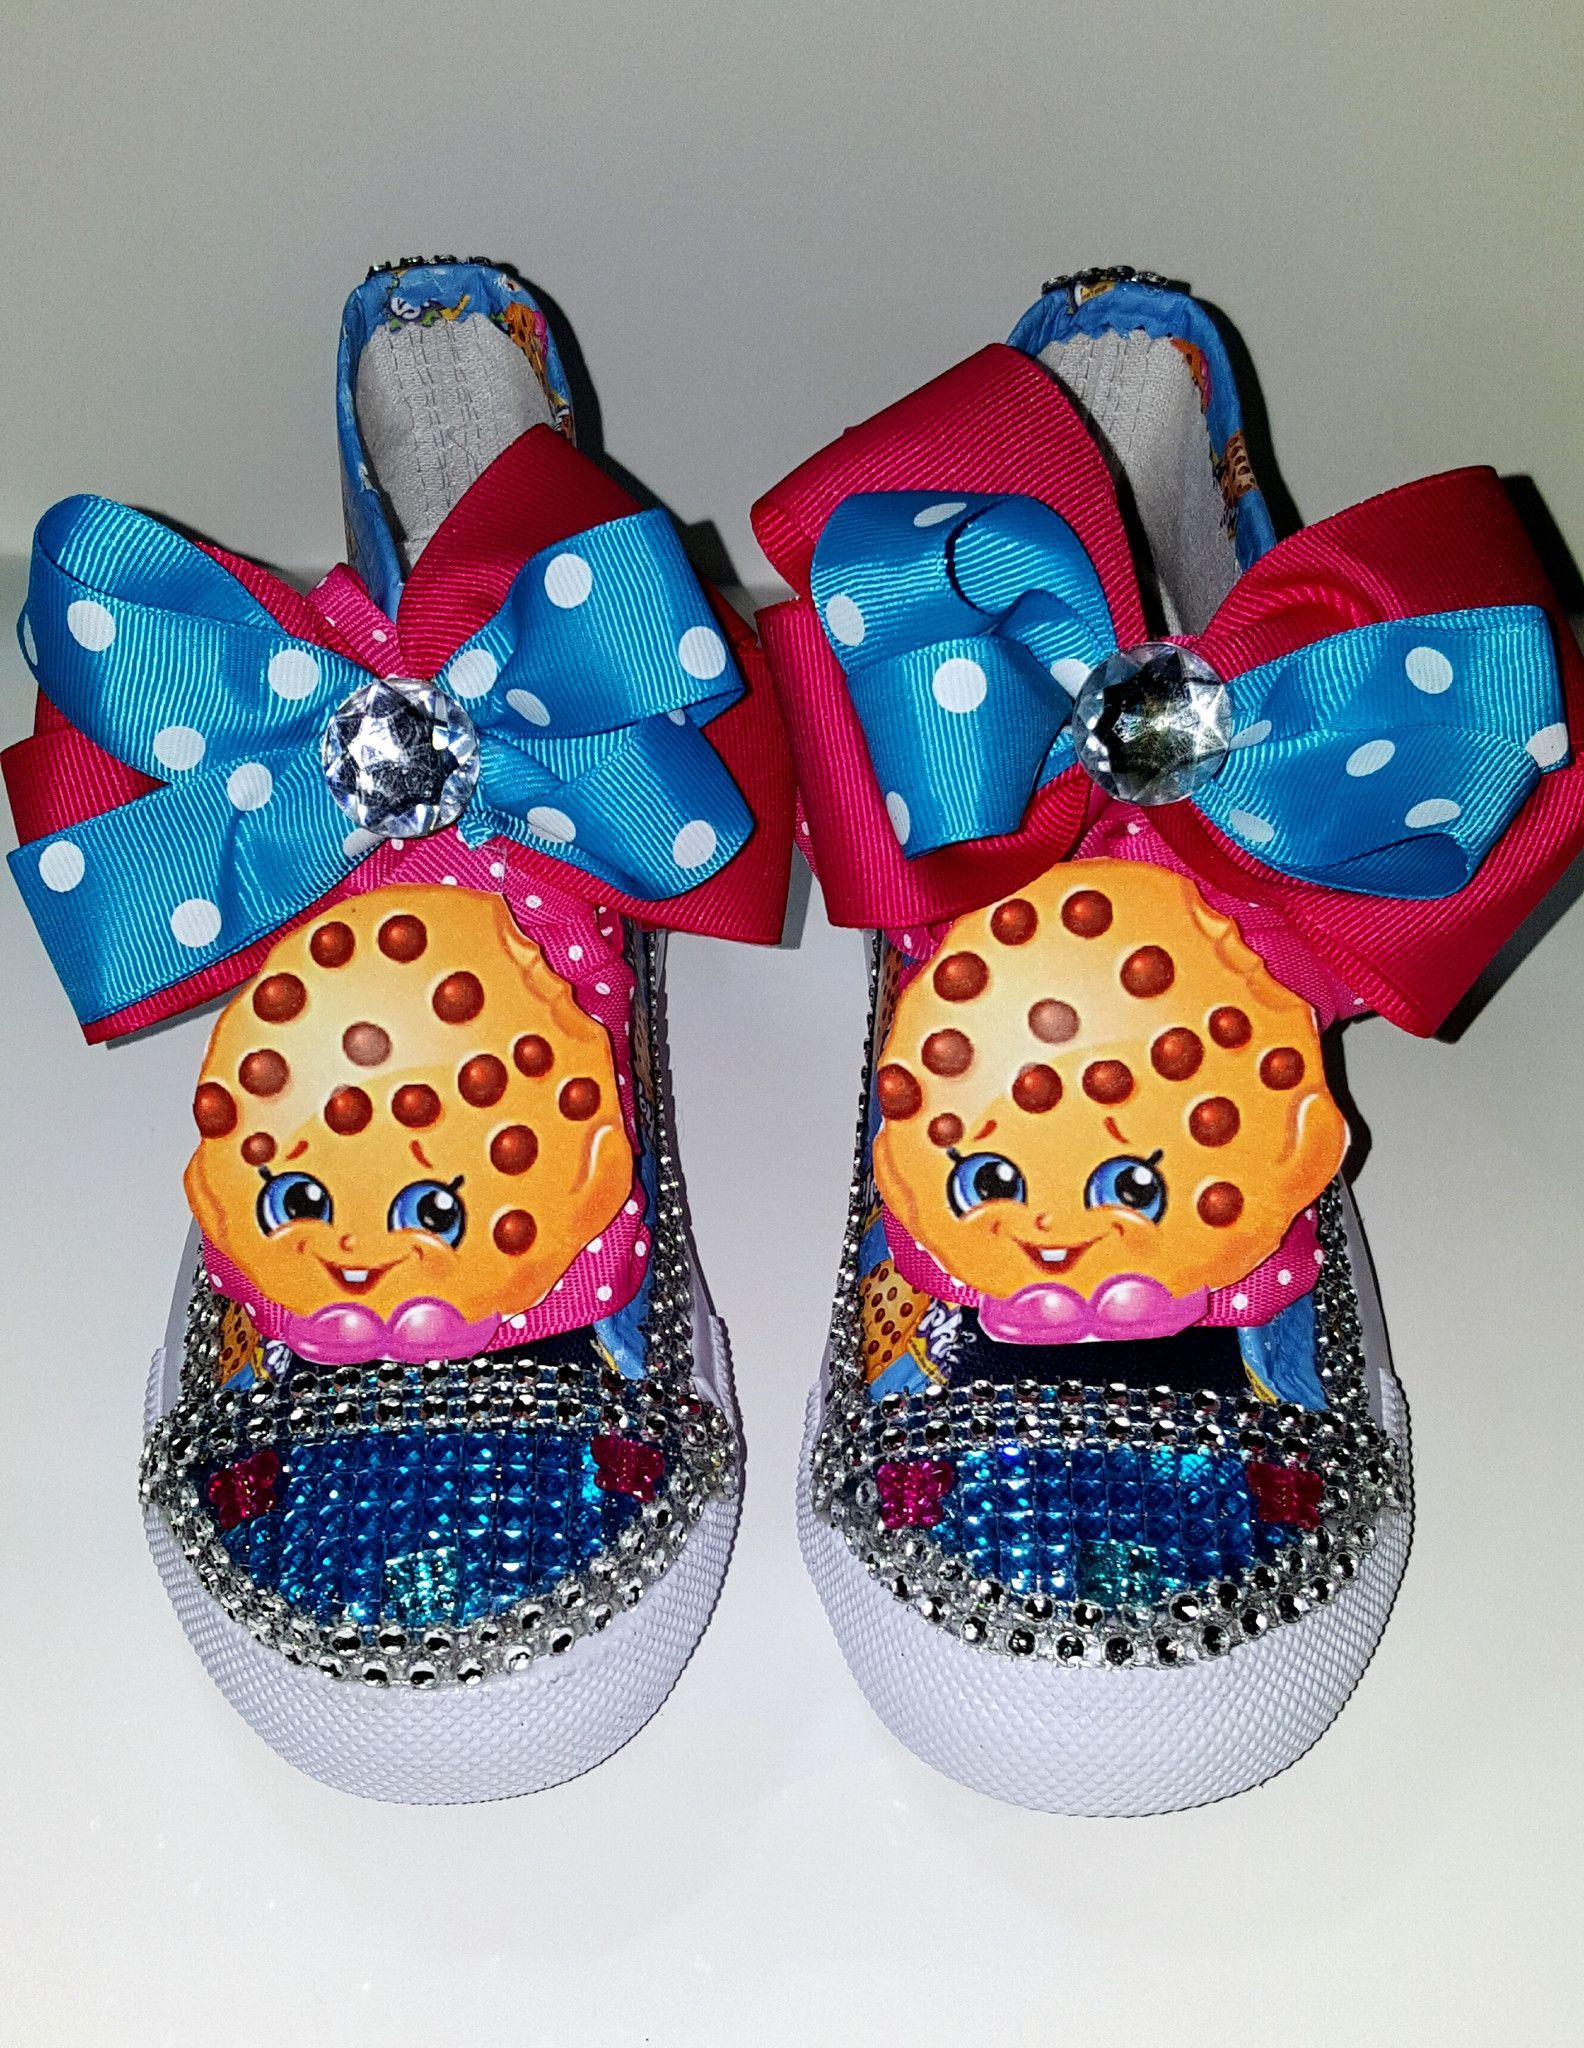 d82068ca1f Limited Edition Shopkins Blue Kooky Cookie Inspired Shoe (NON-CONVERSE)